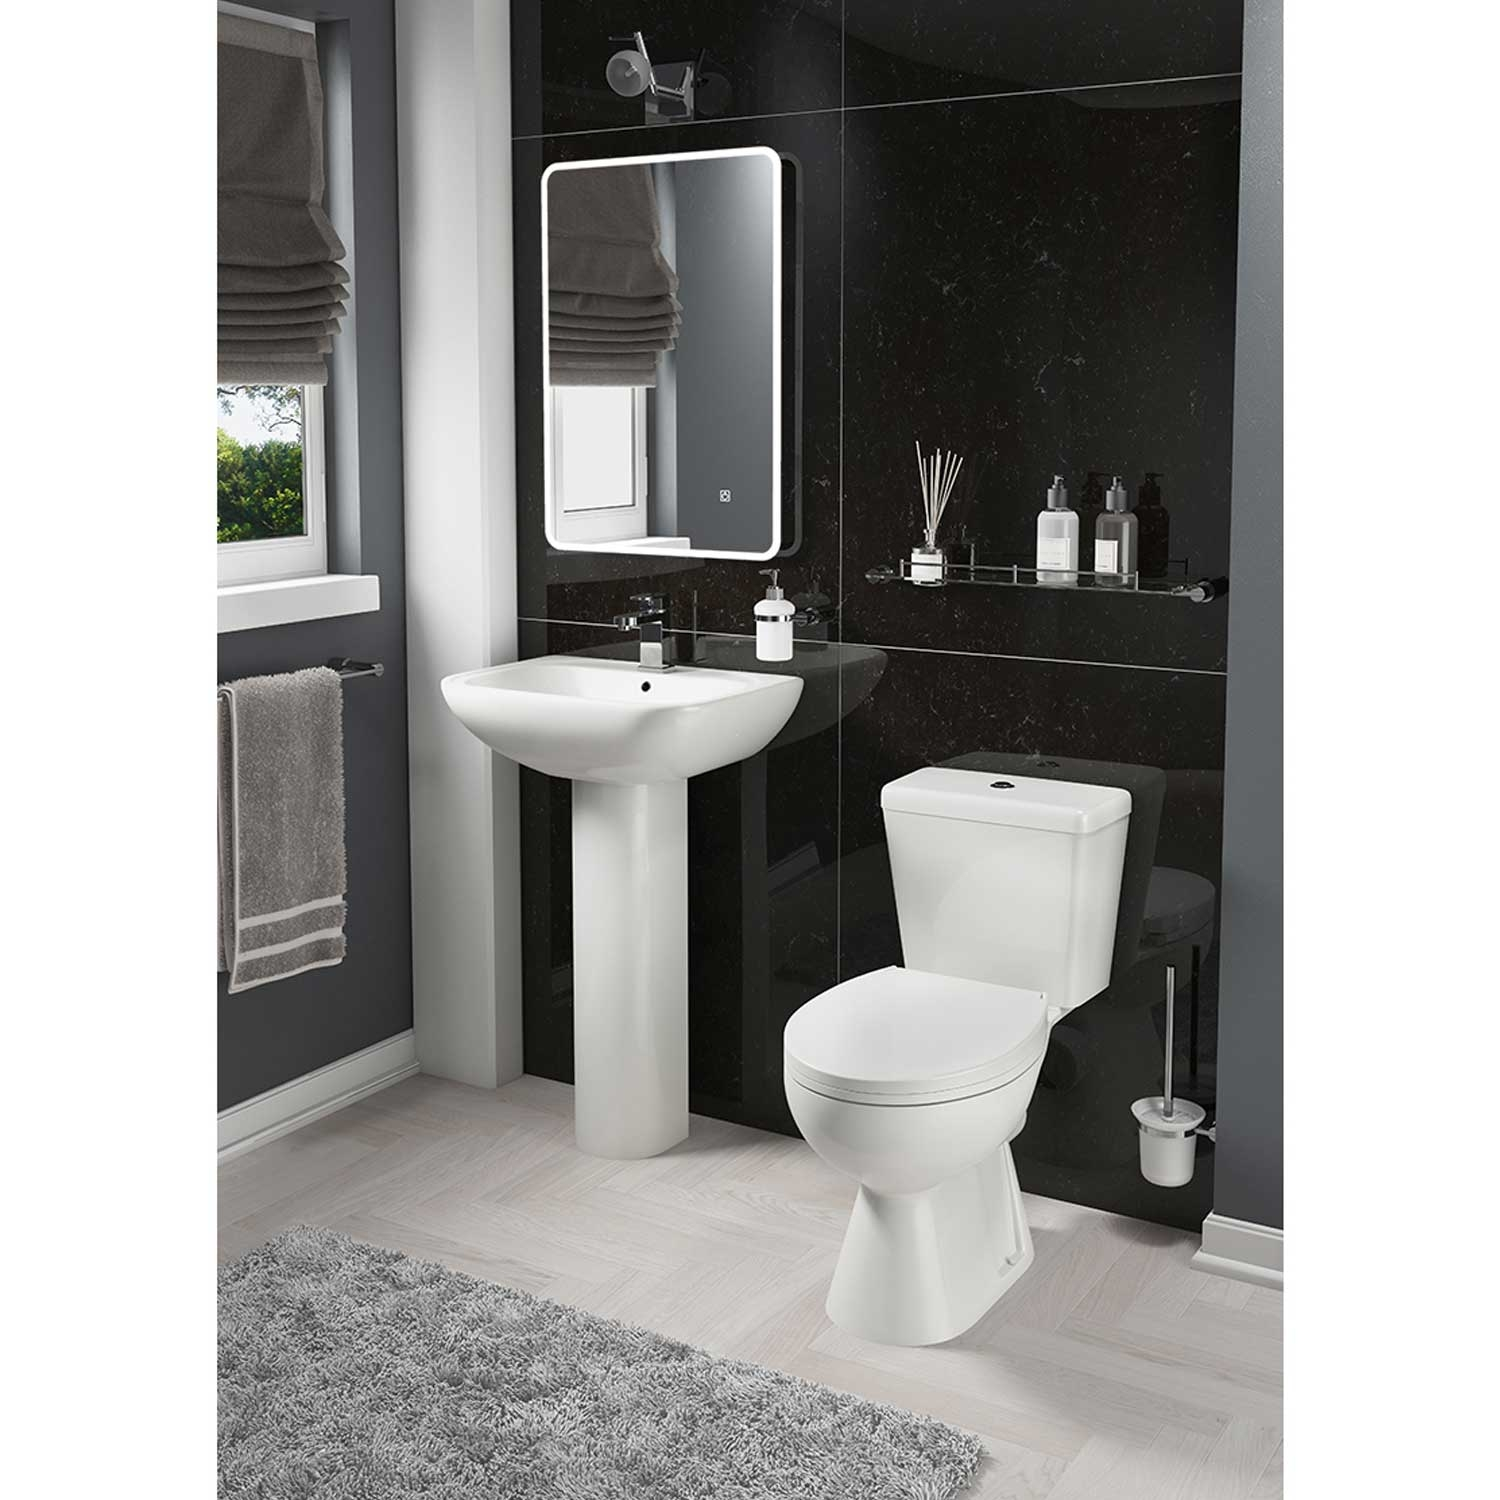 Cali Unison Close Coupled Toilet - Push Button Cistern - Soft Close Seat